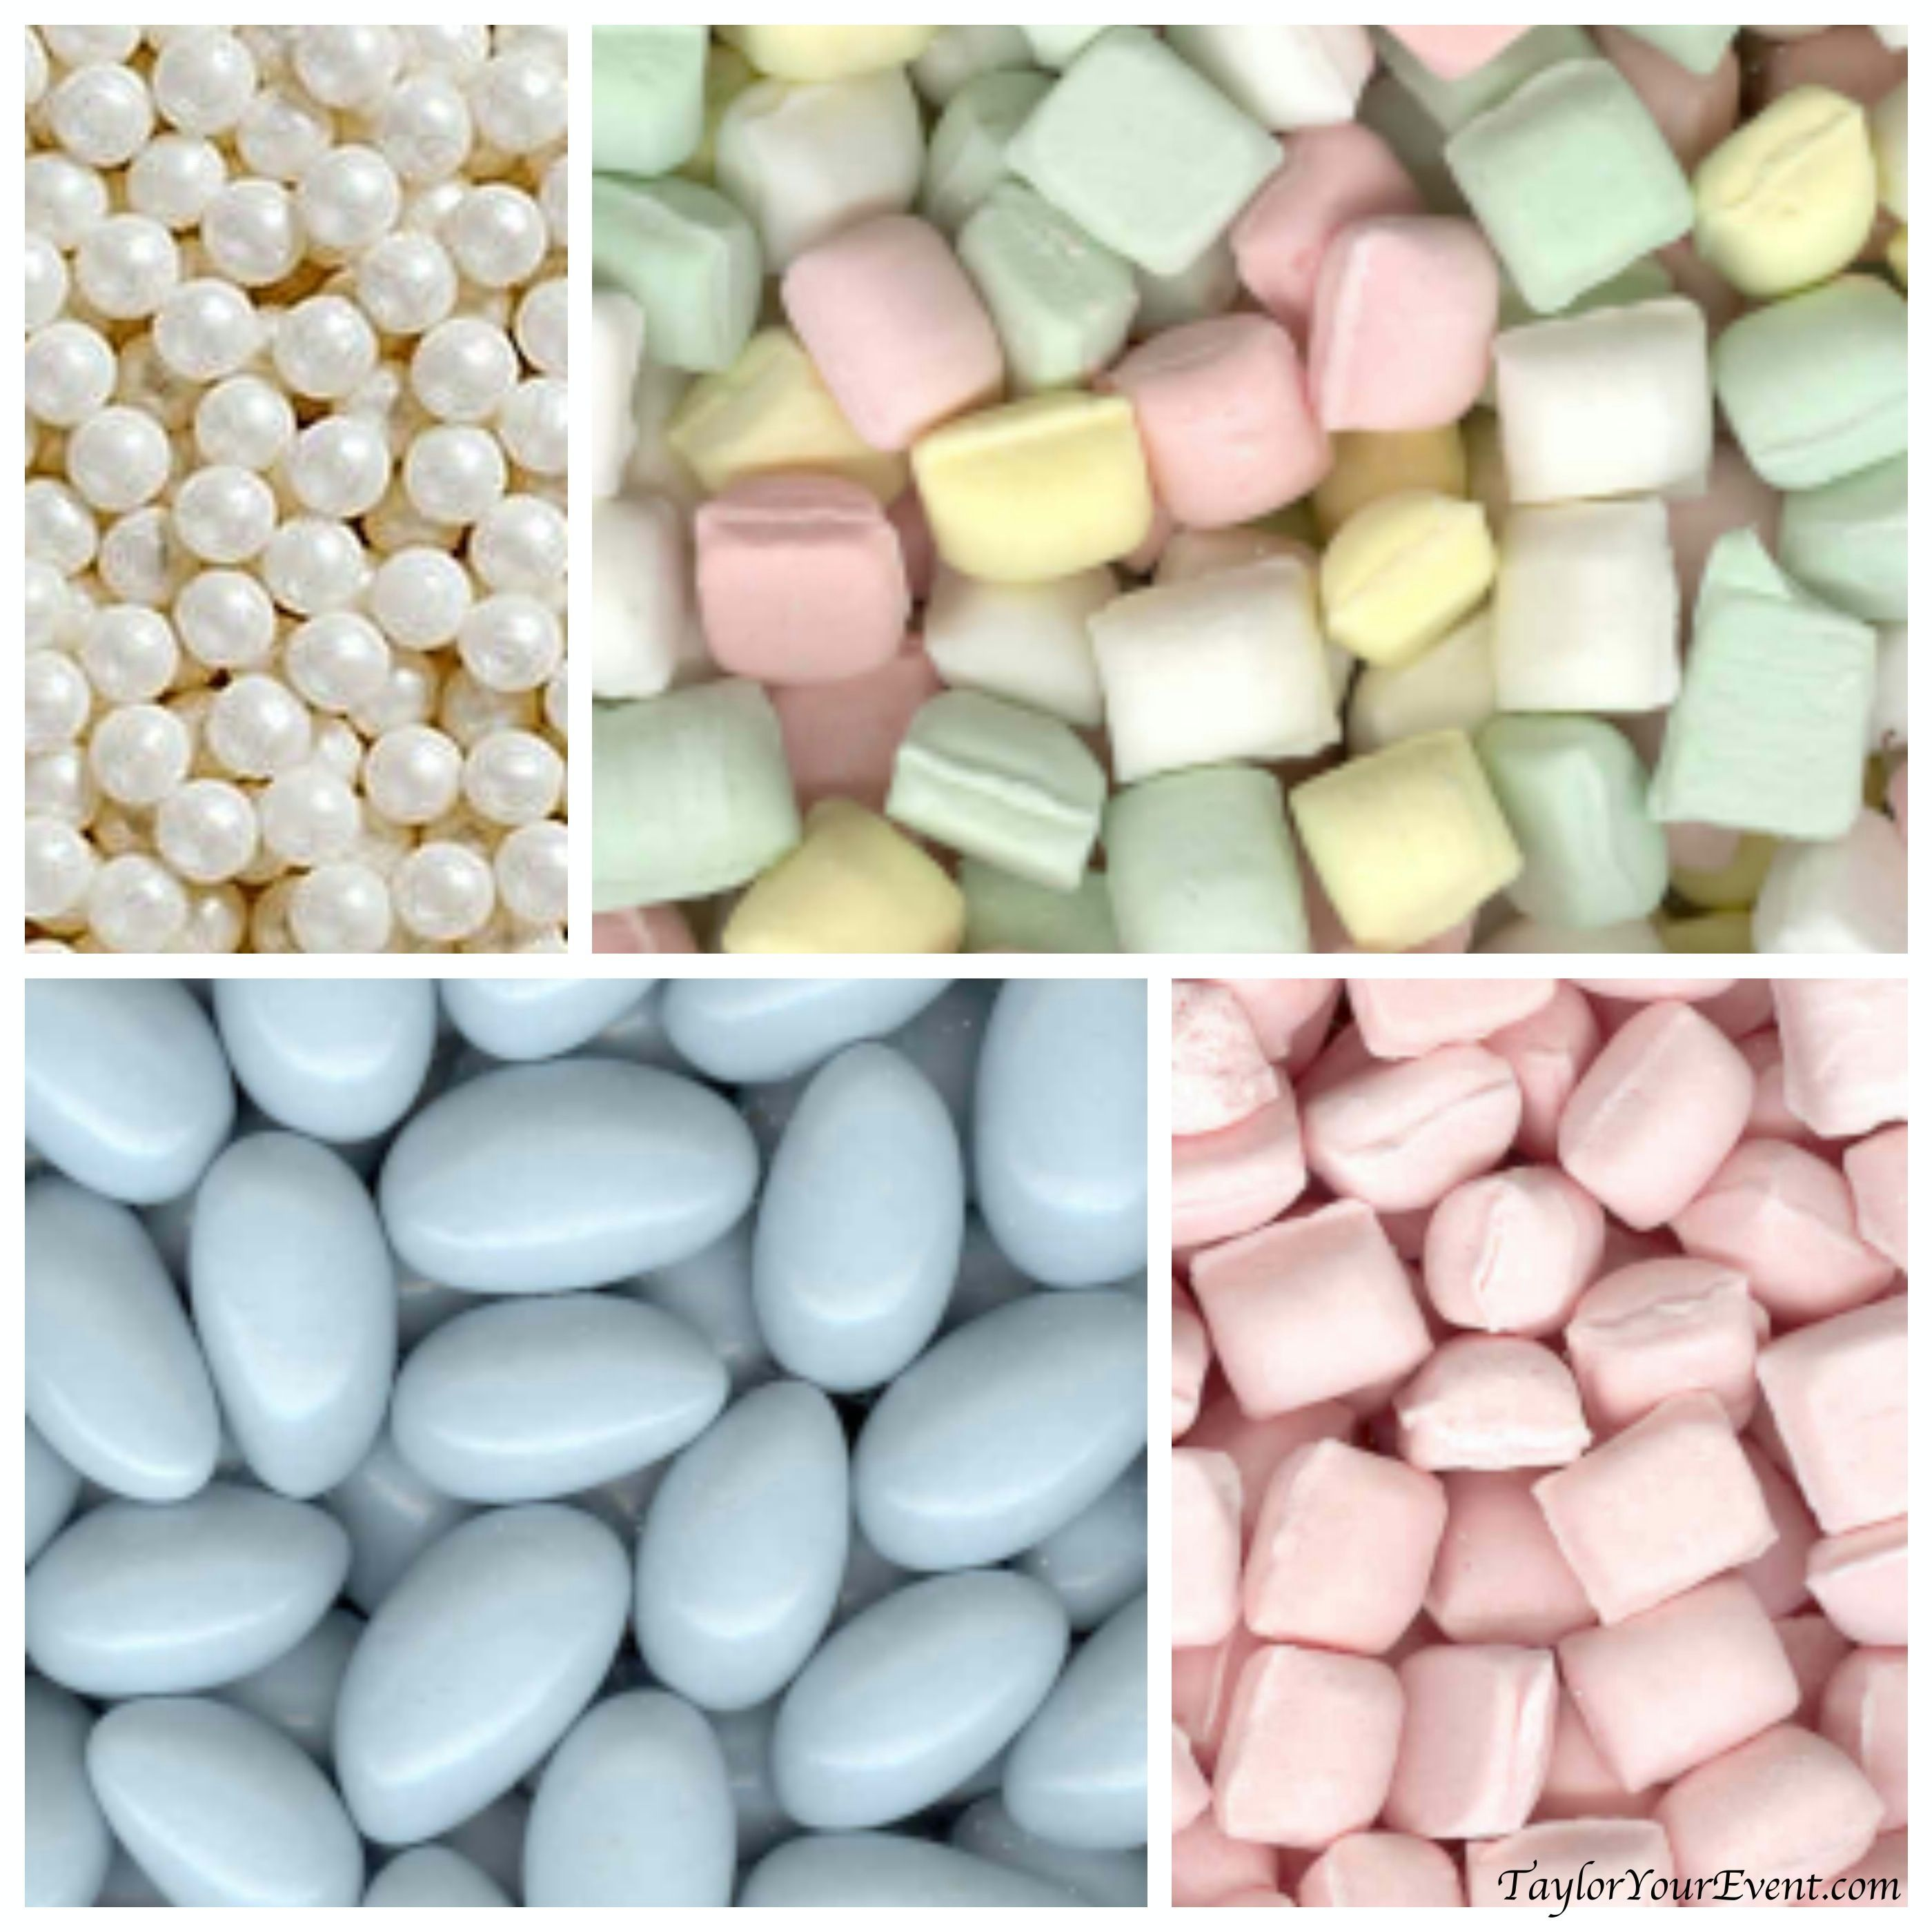 Melty Mints. A smooth, mint-flavored pastel-color drop topped with Bulk Pastel Dainty After Dinner Mints - 5 lbs in a Resealable Bomber Bag - Great for Candy Bowls - Wholesale - Parties - Vending Machine Refill. by Fast Fresh Nuts. $ $ 31 76 ($/Pound) FREE Shipping on eligible orders.